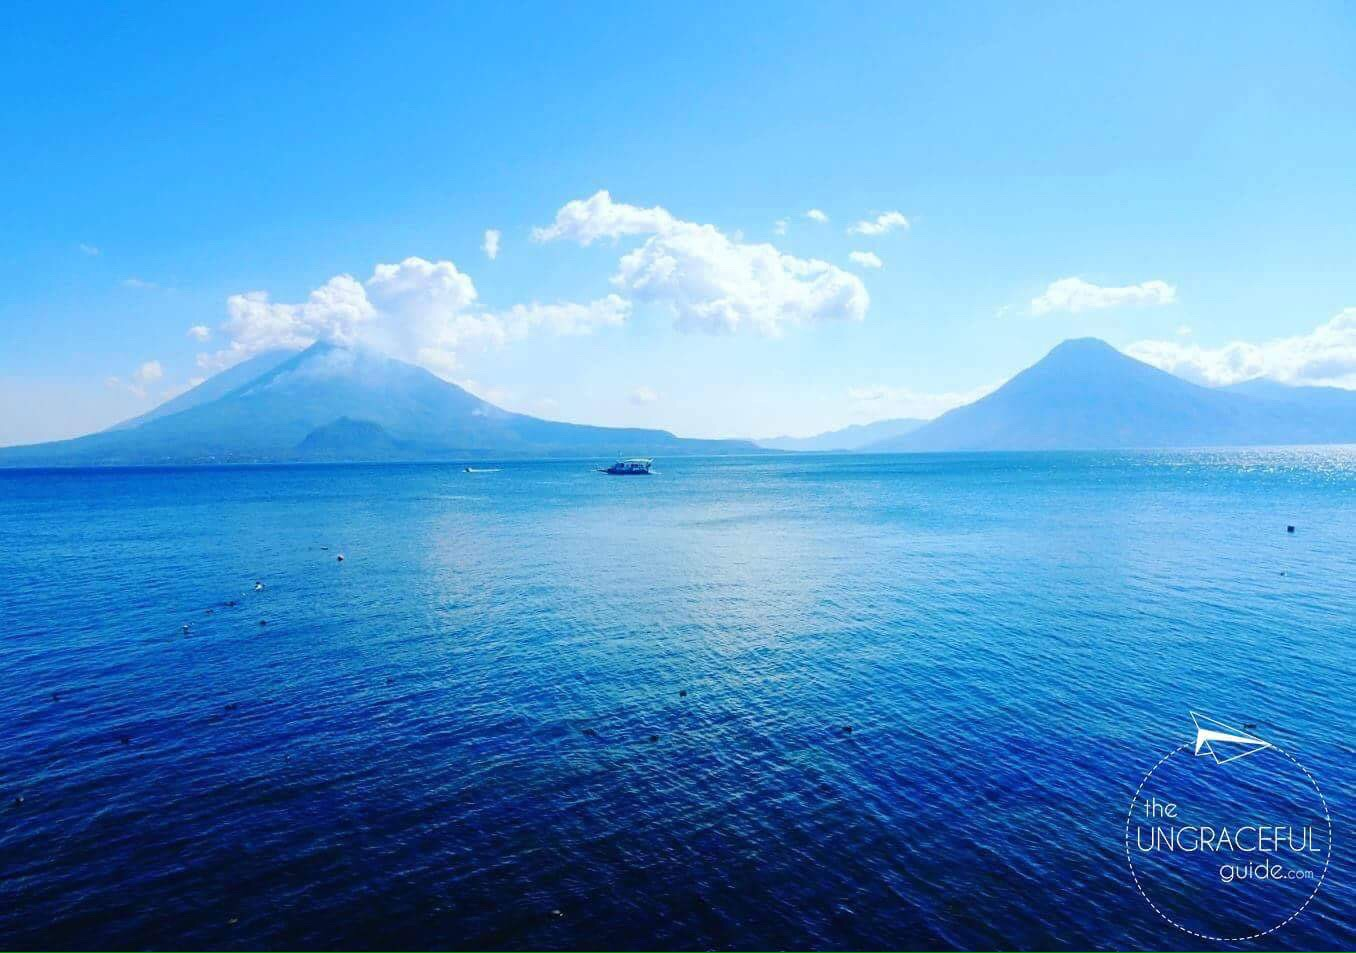 "The Ungraceful Guide: Lake Atitlán Guatemala <img src=""images/"" width=""800"" height=""600"" alt=""lake atitlán - img 1072 - Guatemala: Loving Life on Lake Atitlán""> <img src=""images/"" width=""800"" height=""600"" alt=""guatemala - img 1072 - Guatemala"">"